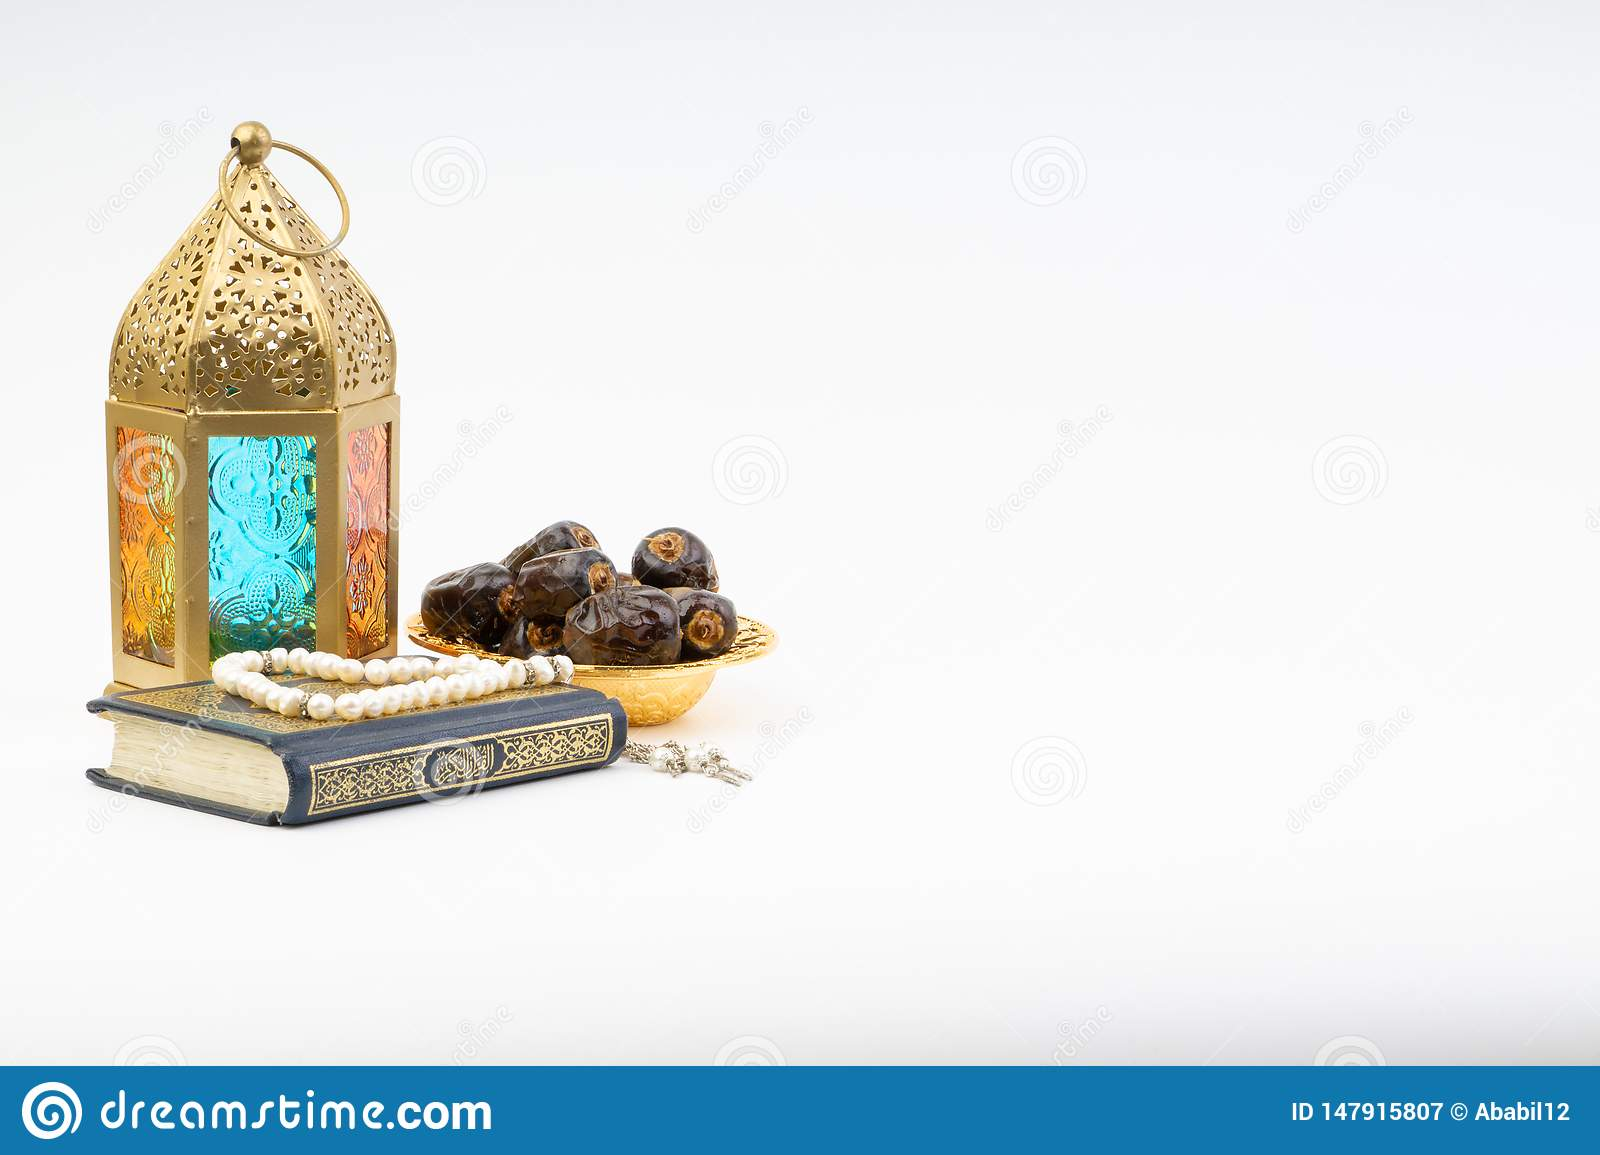 Lantern, Dates, Koran and Rosary on white background with selective focus and crop fragment